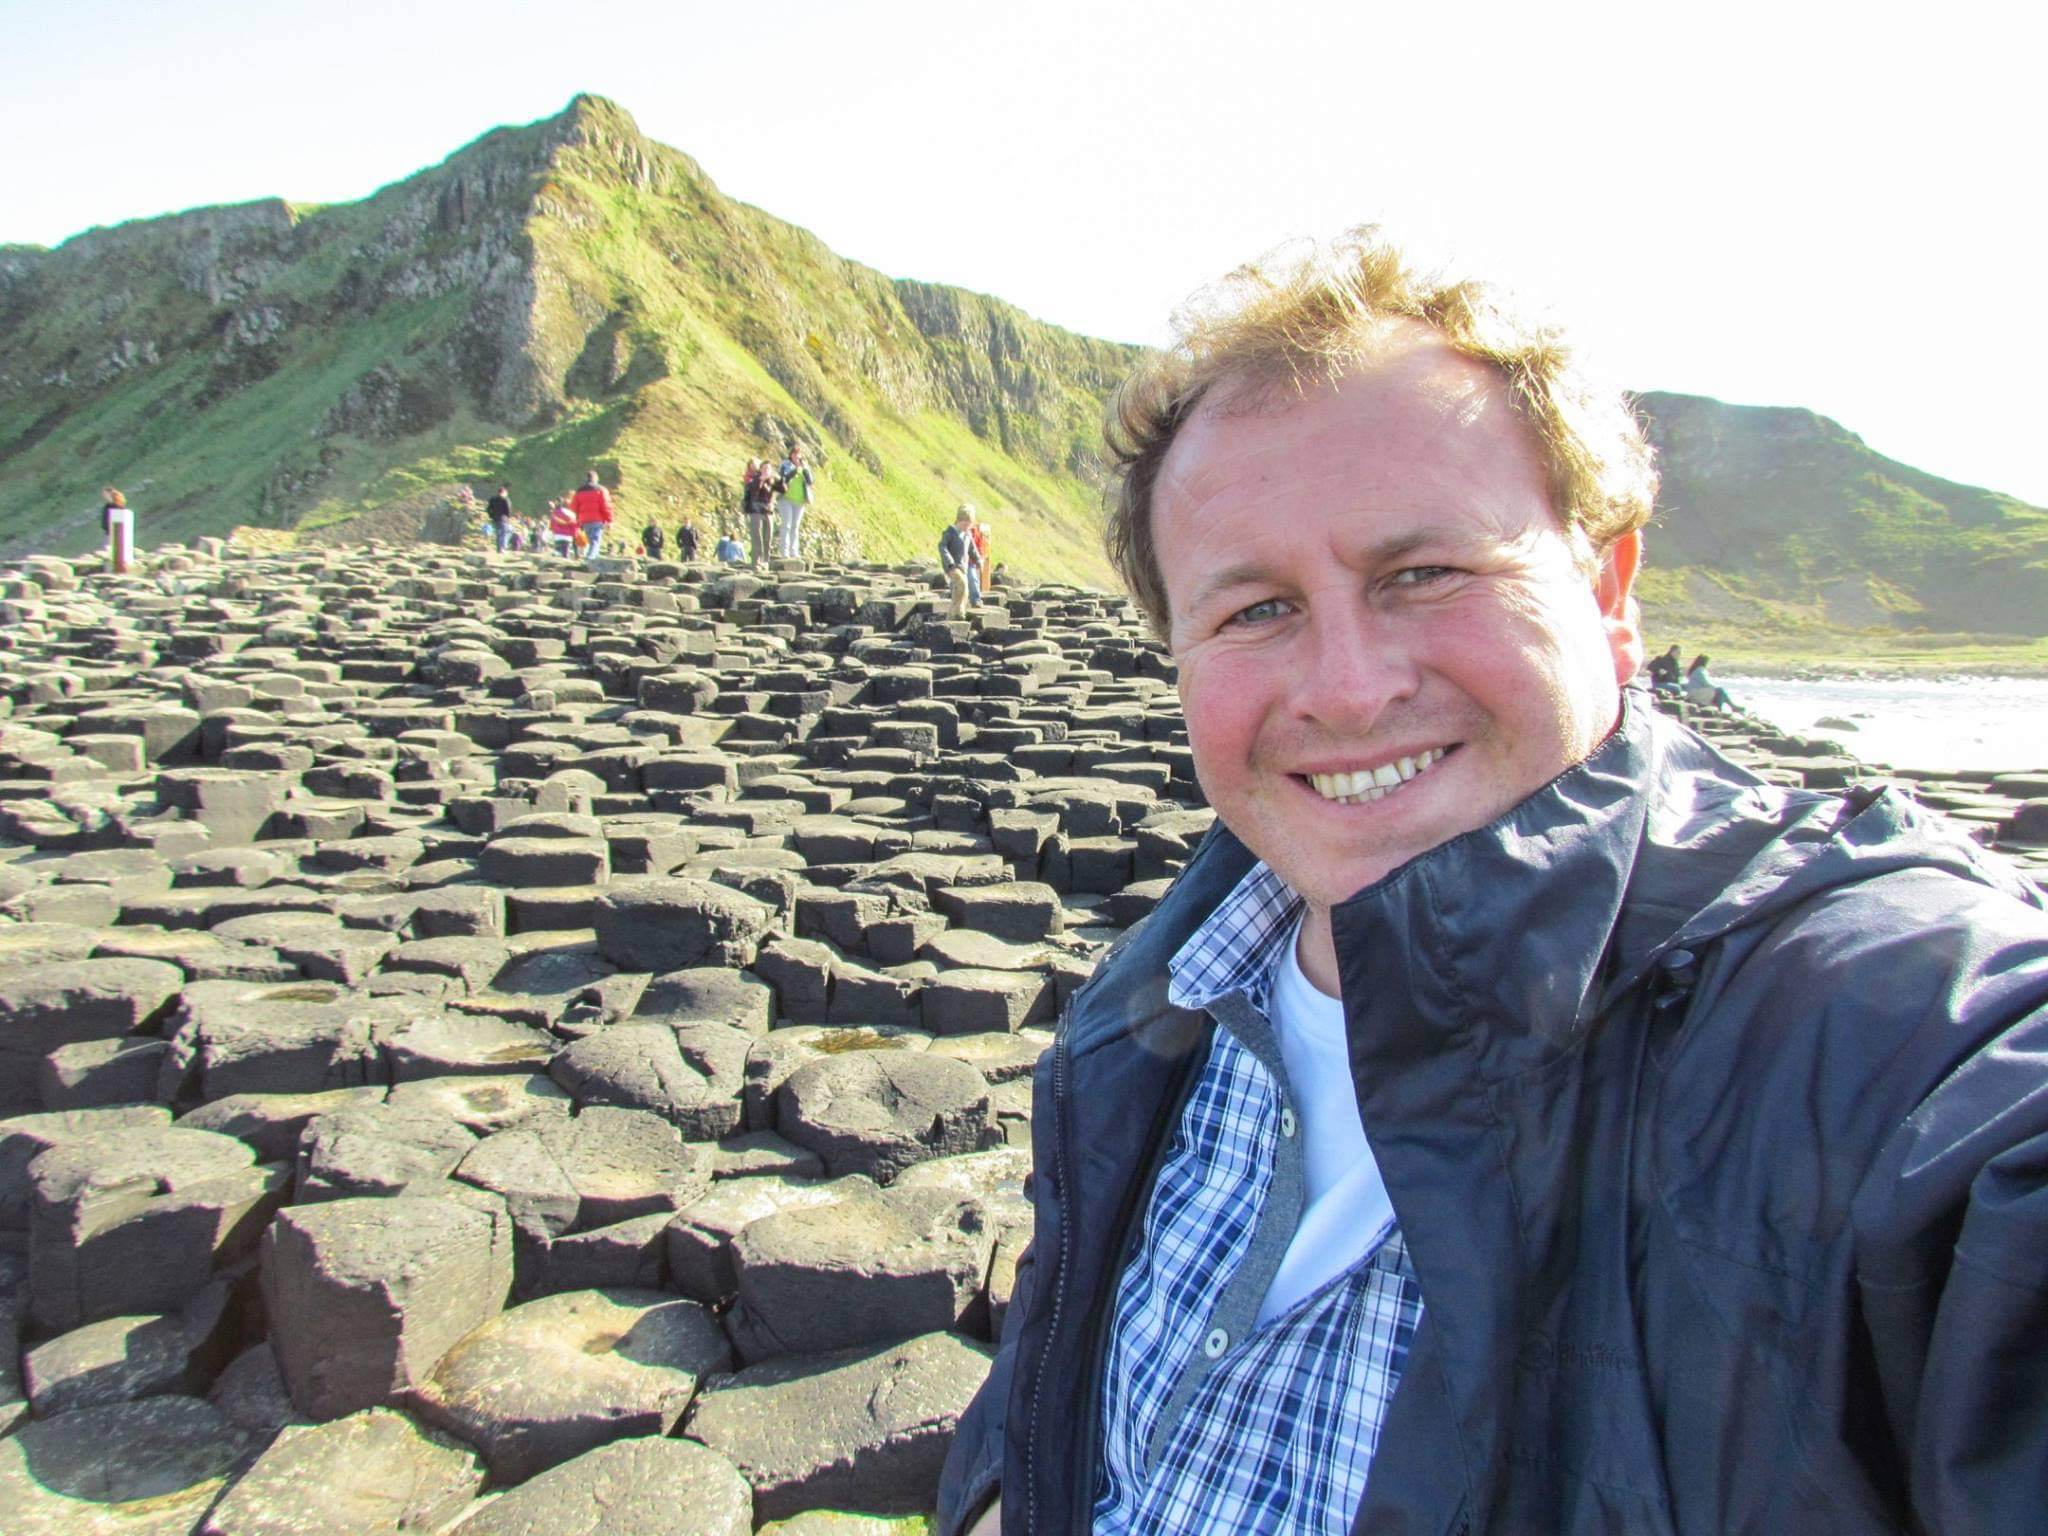 Giant's Causeway, Northern Ireland. The geological wonder of hexagonal tubes